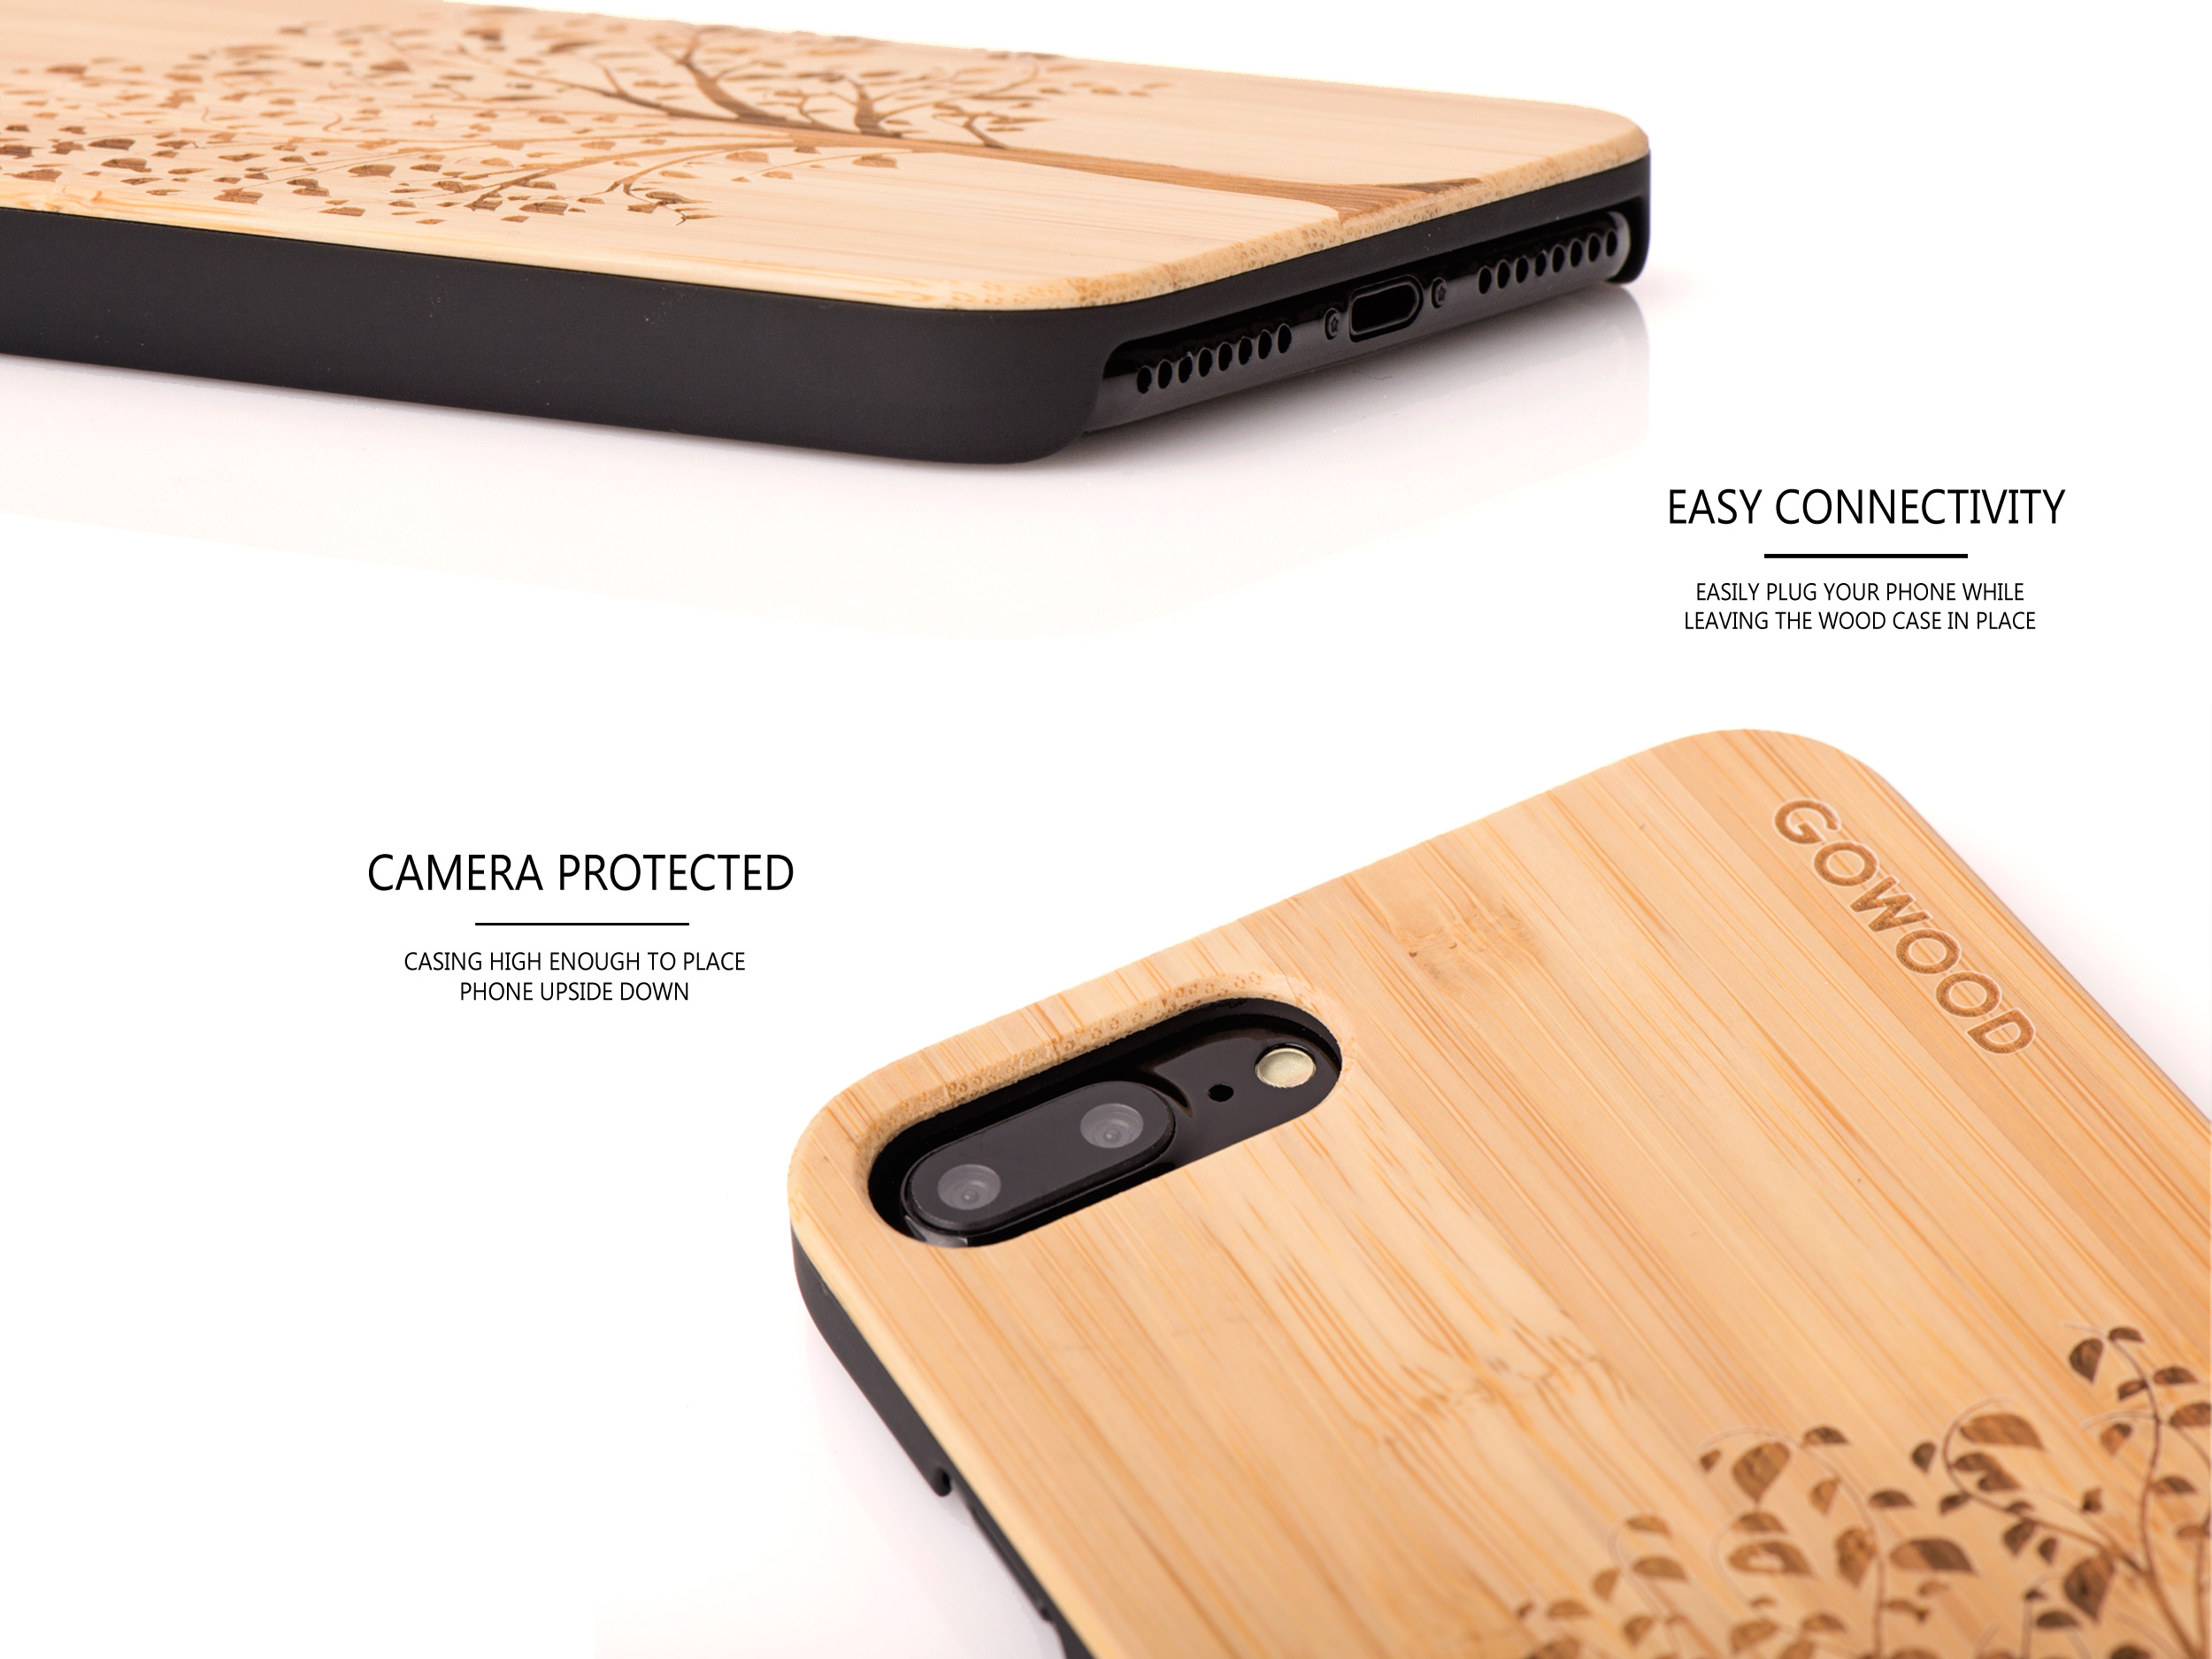 iPhone 7 Plus and 8 Plus wood case tree - camera